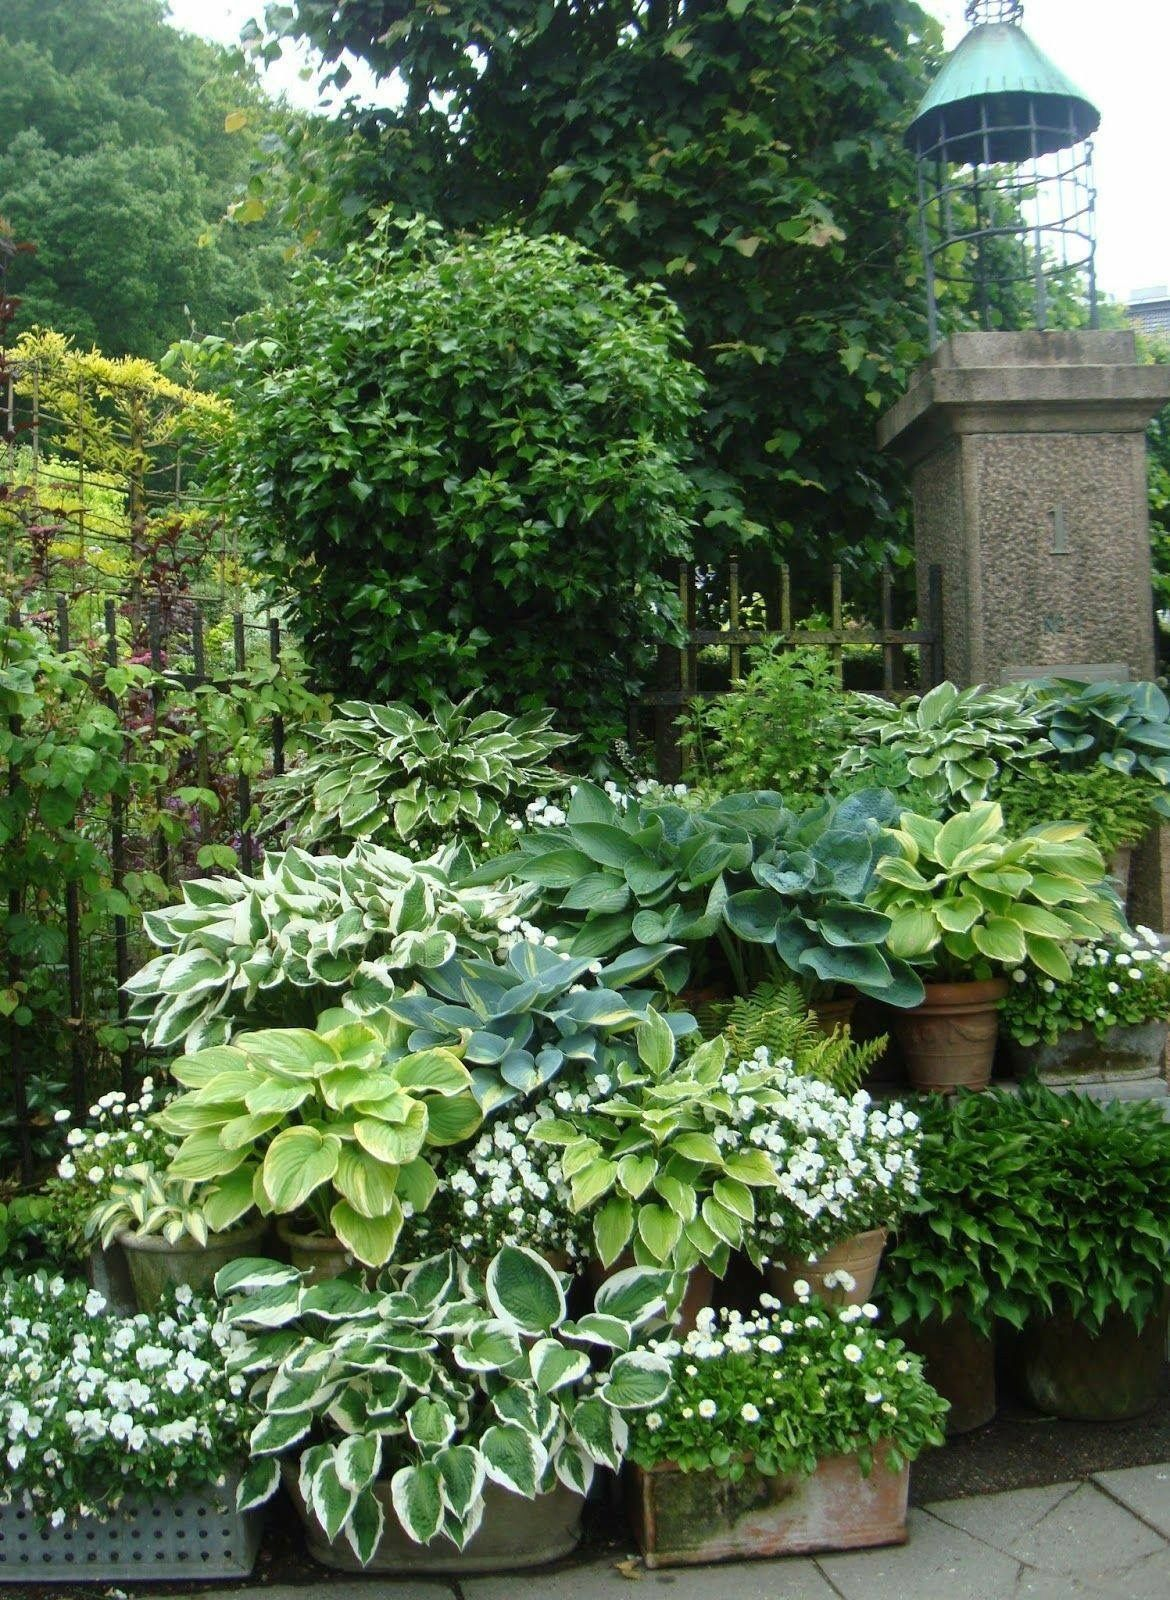 Hosta Garden Ideas Pin by ali banyard on planting ideas pinterest gardens lawn and great idea for you shade hostas planted in pts workwithnaturefo